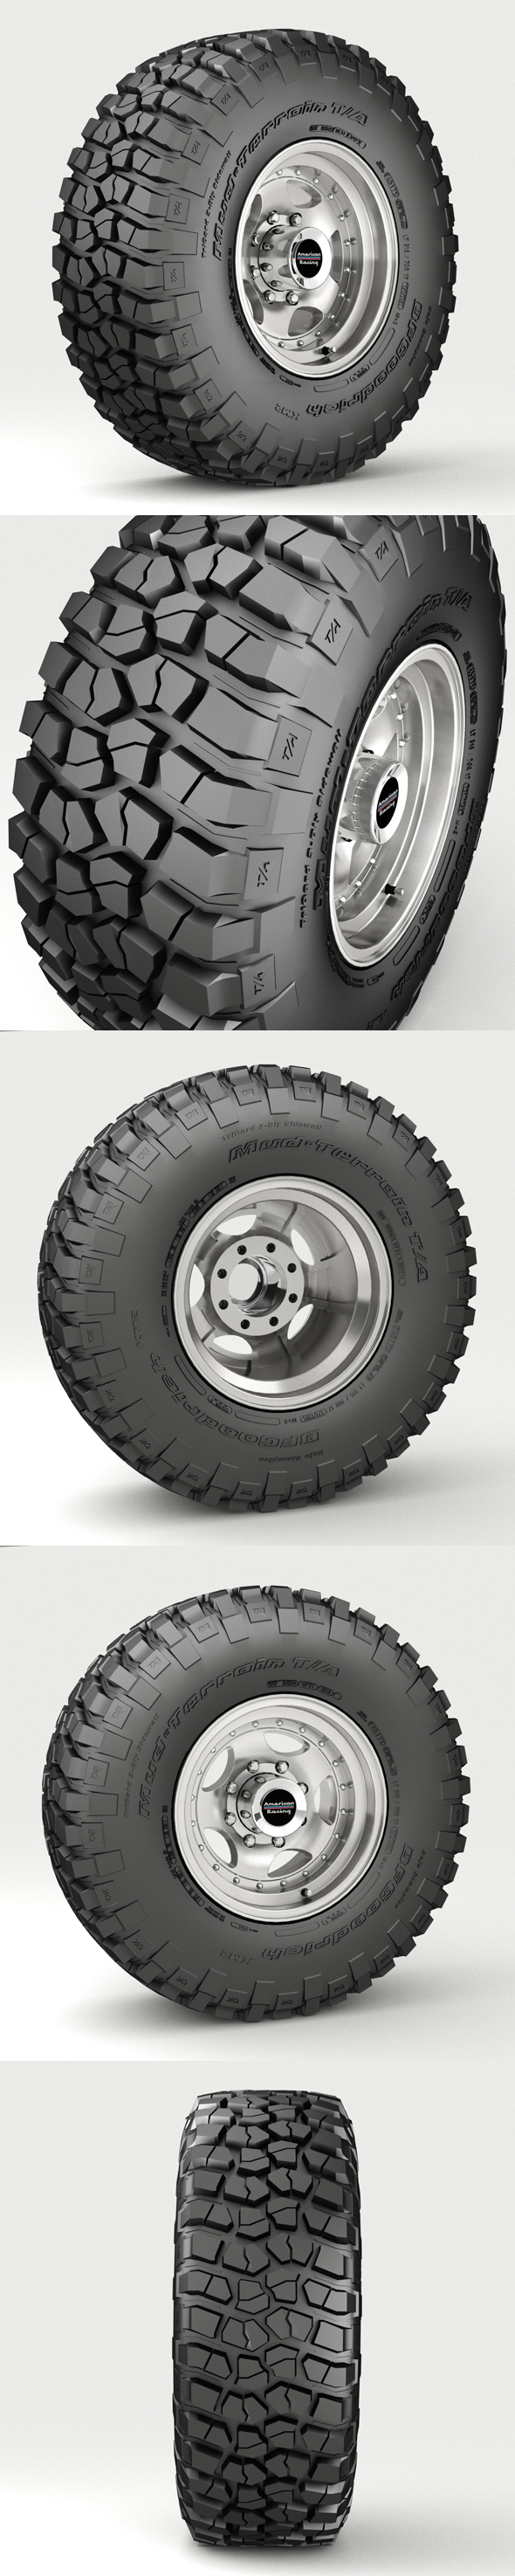 Off Road wheel and tire 3 - 3DOcean Item for Sale